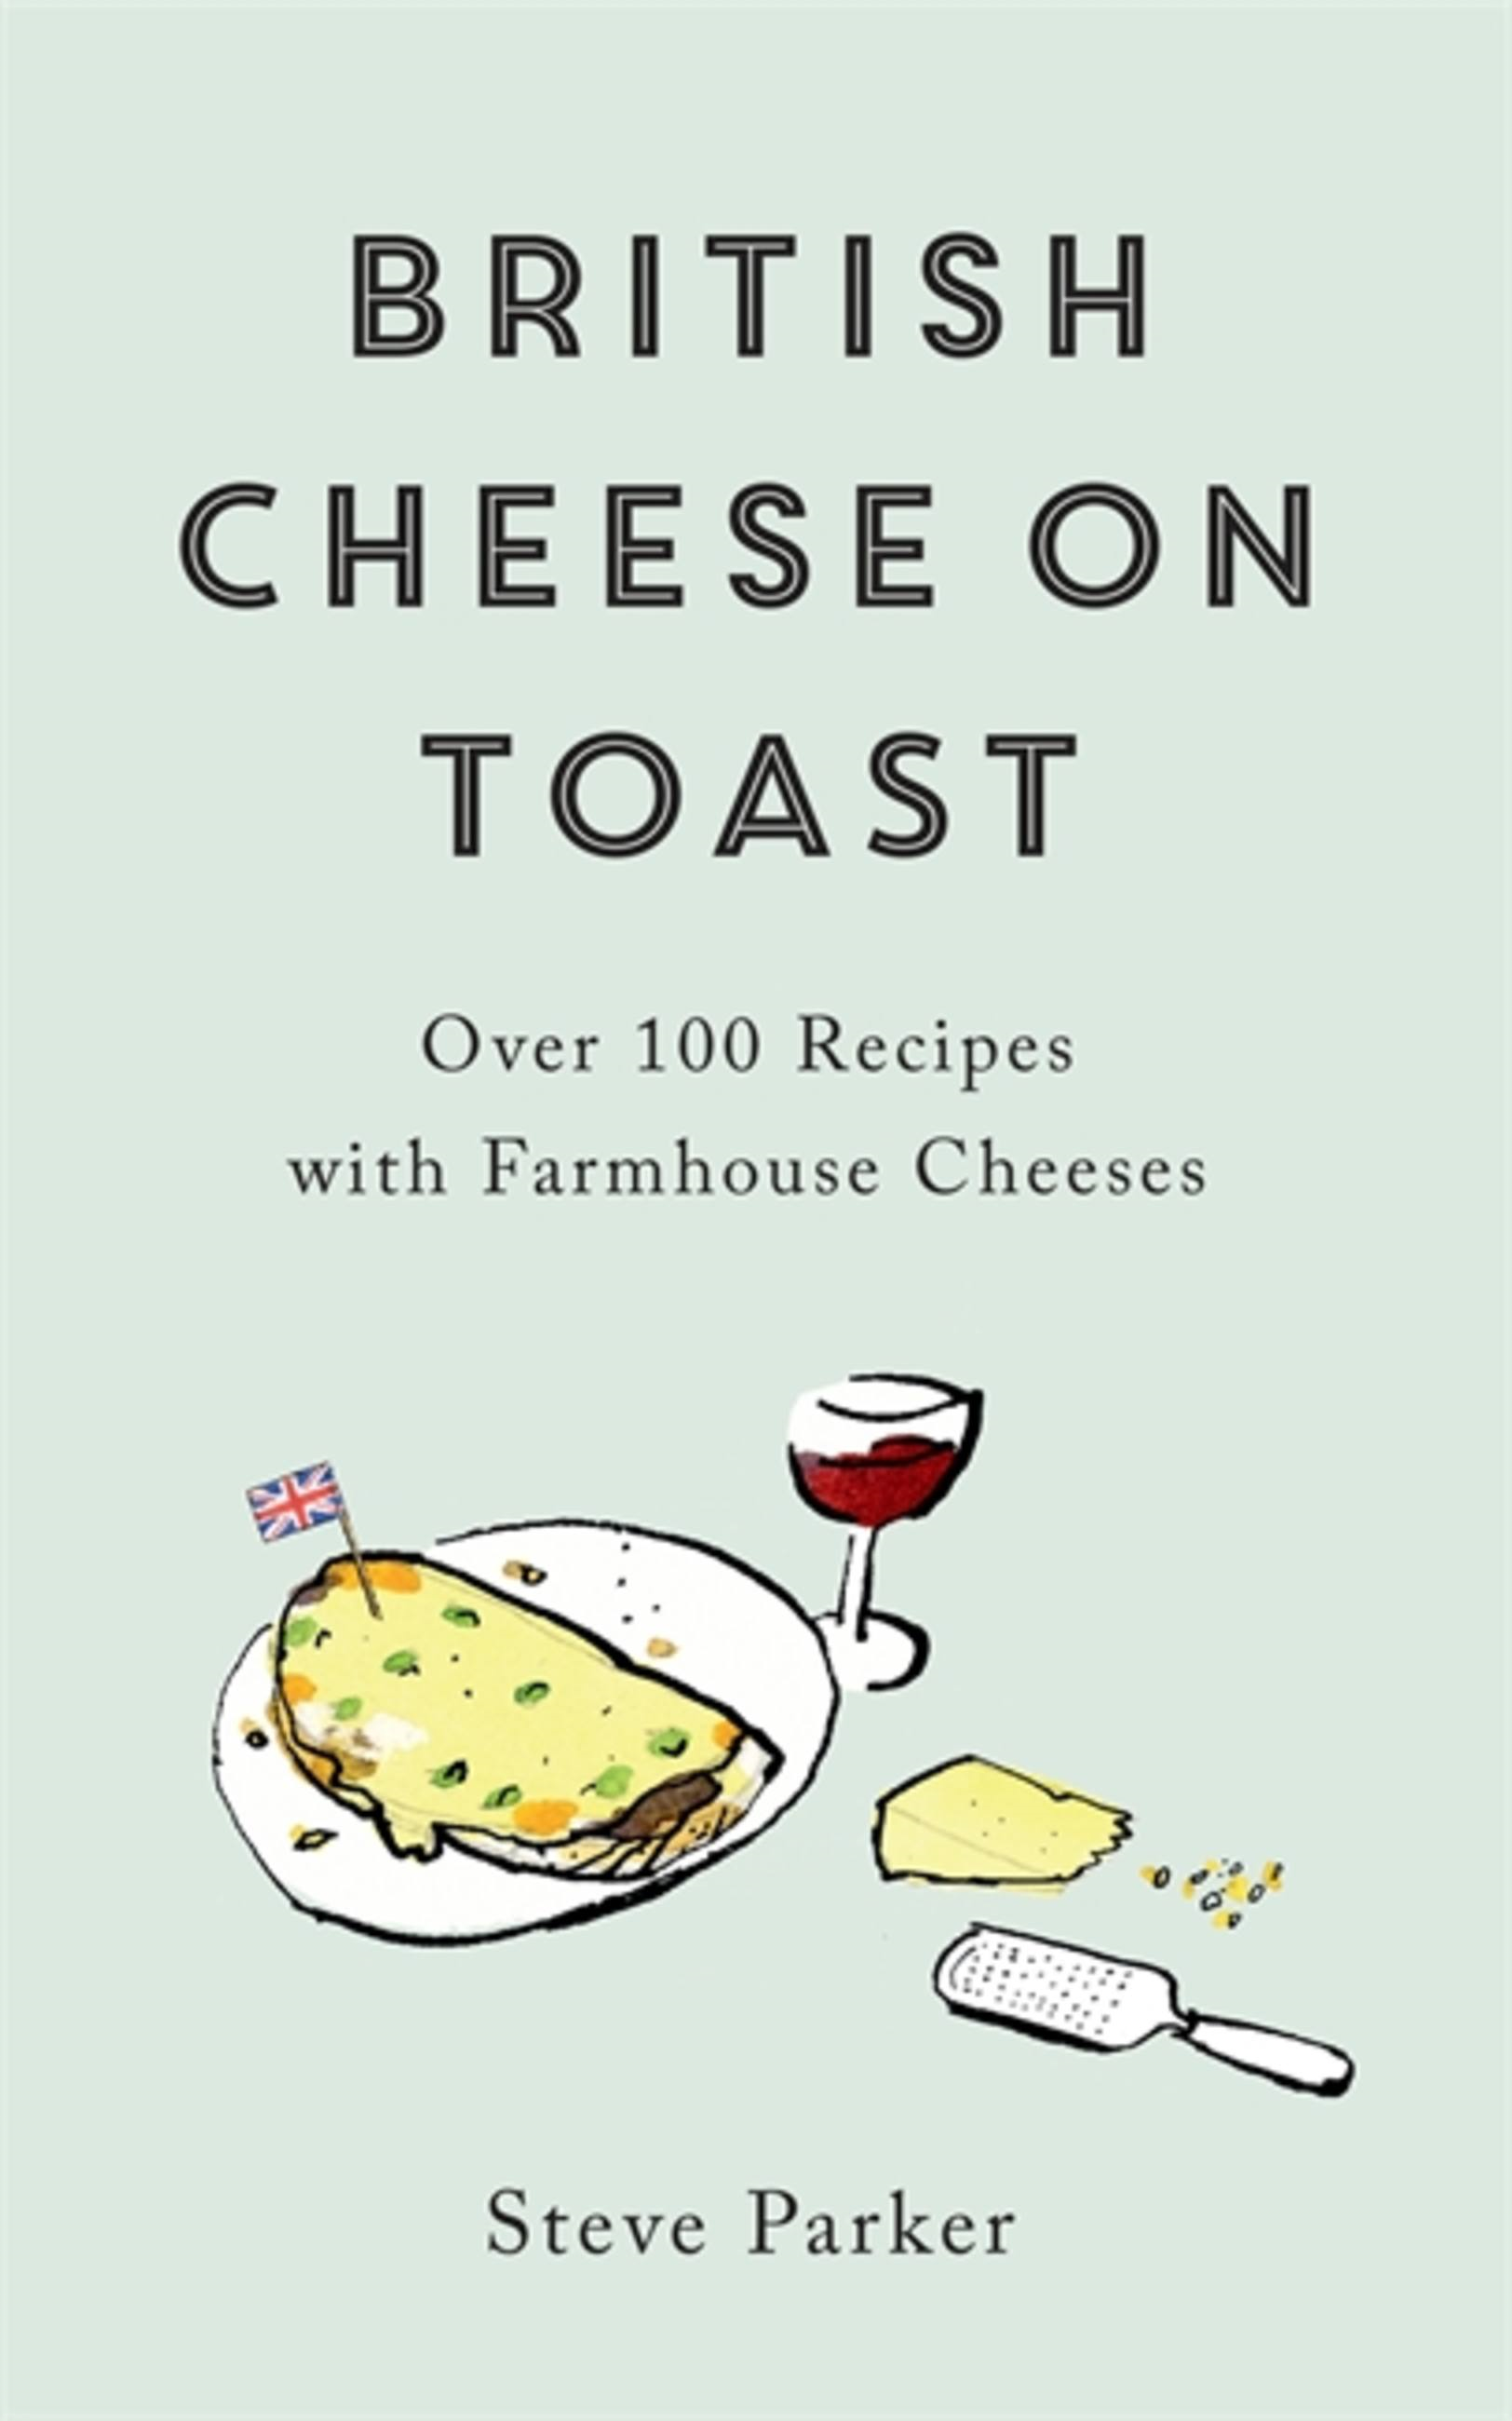 British Cheese on Toast